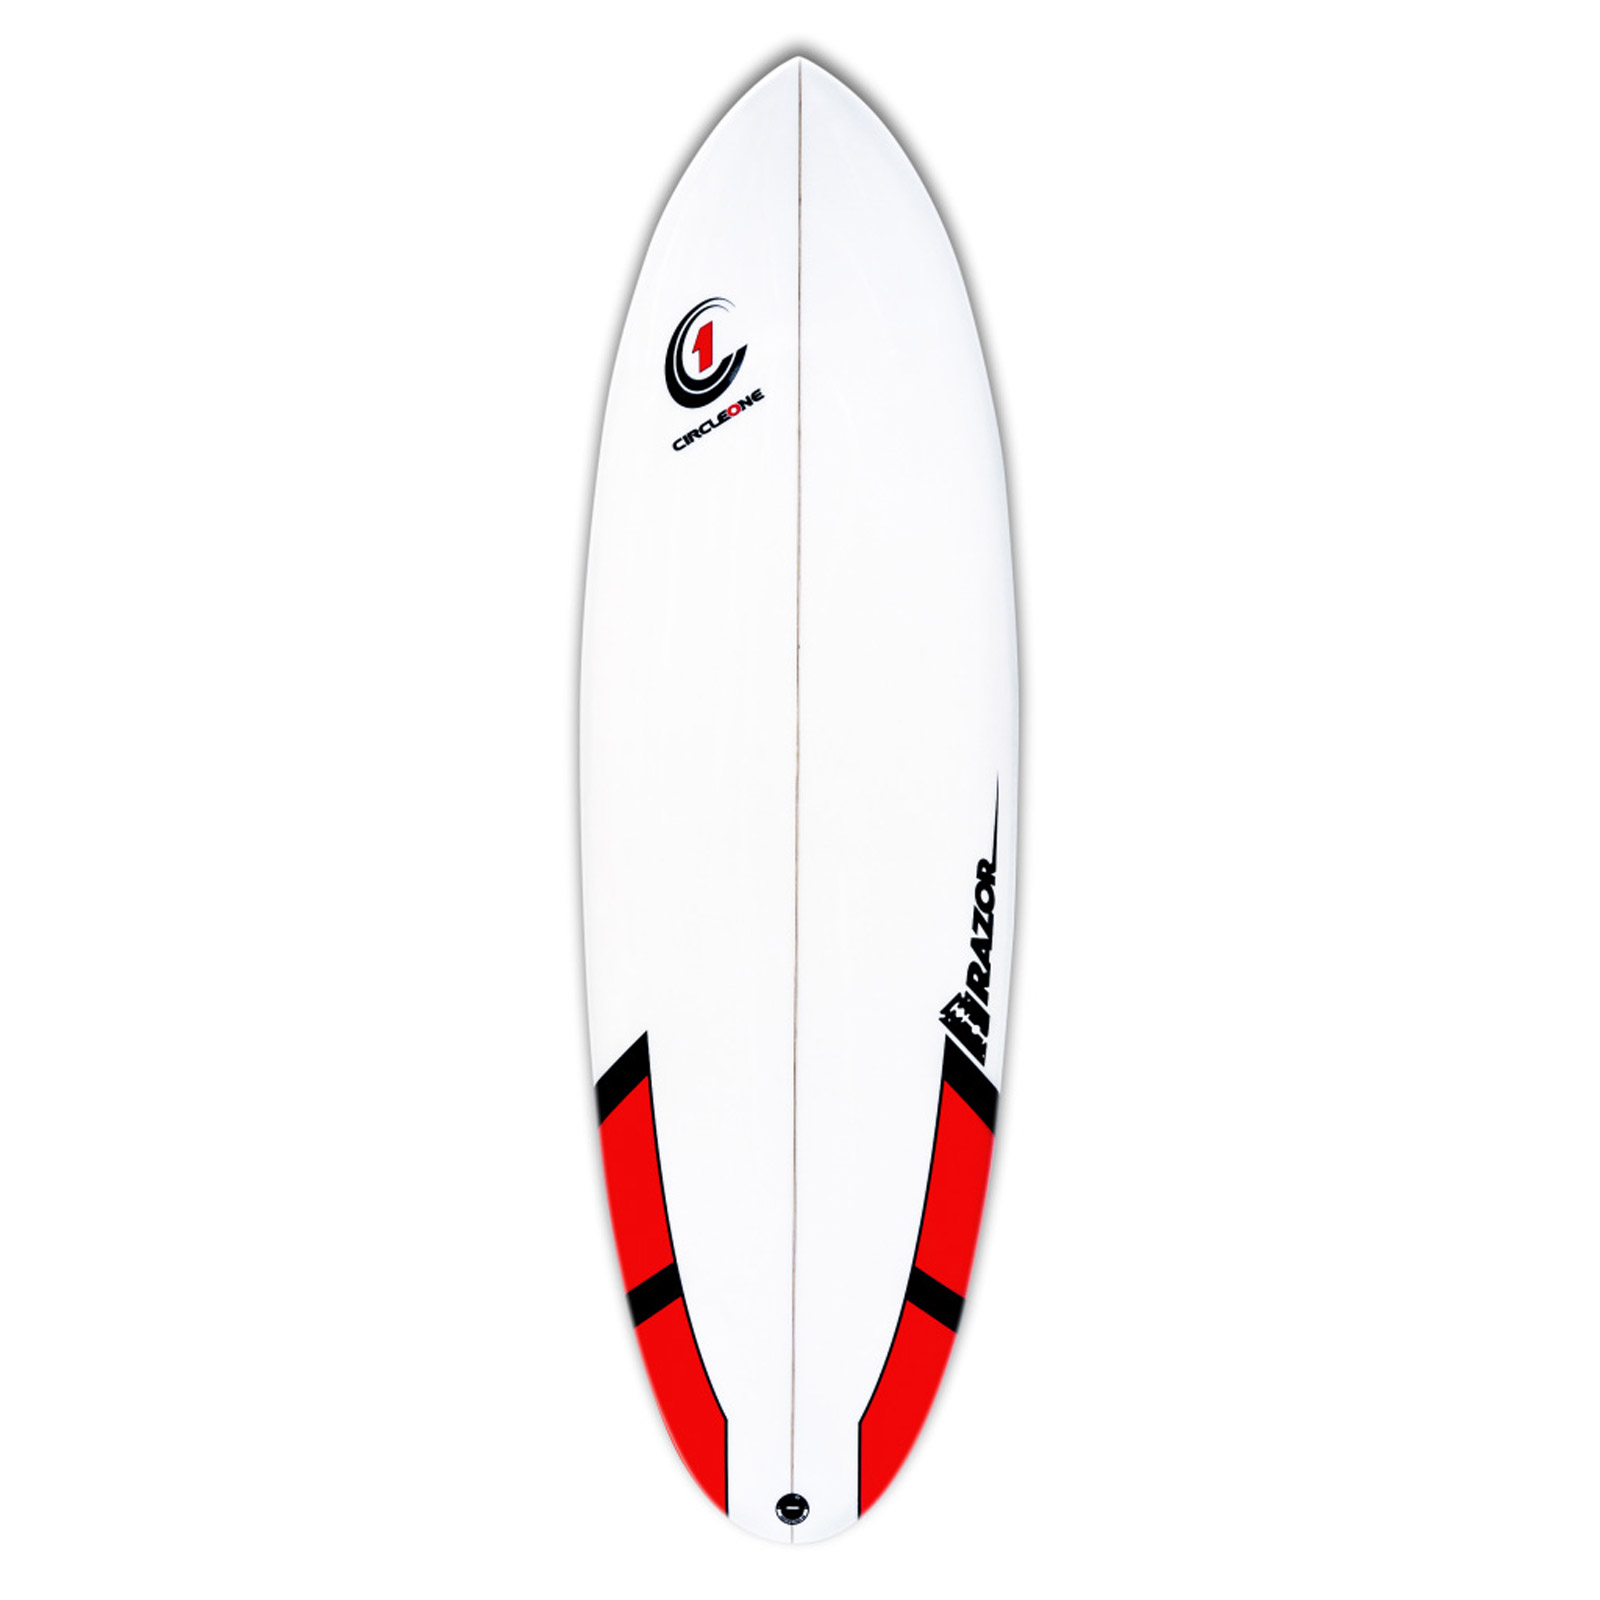 6ft Razor Surfboard - Round Tail Shortboard - Matt Finish